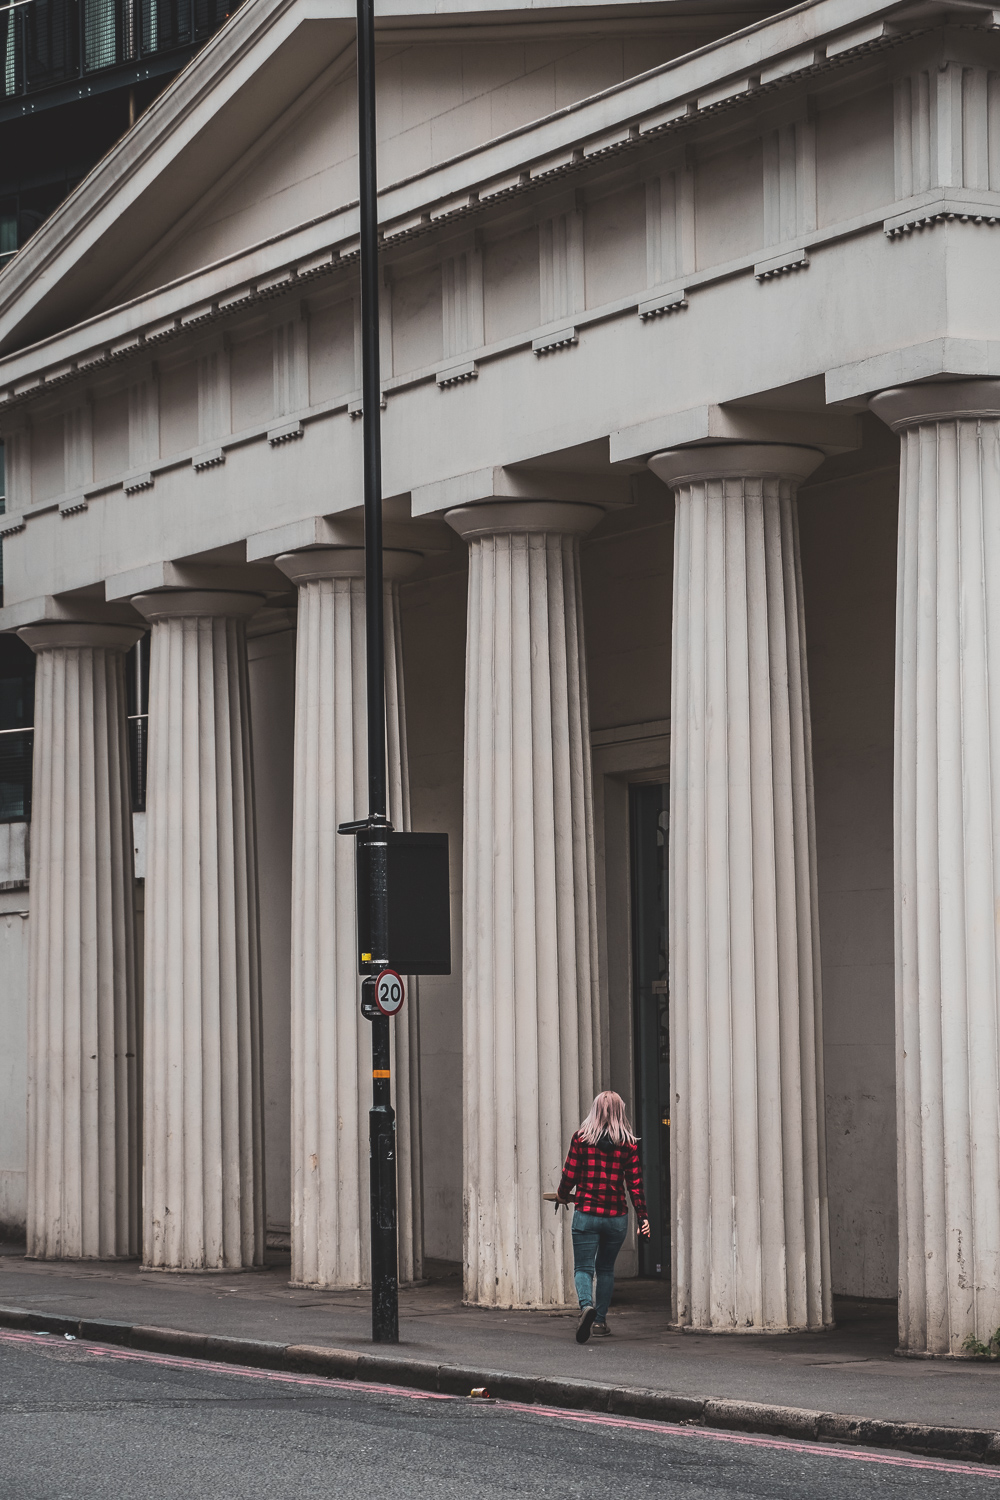 Image: I liked this pop of red in the shirt against the subdued tones of the building. Unidentifiabl...